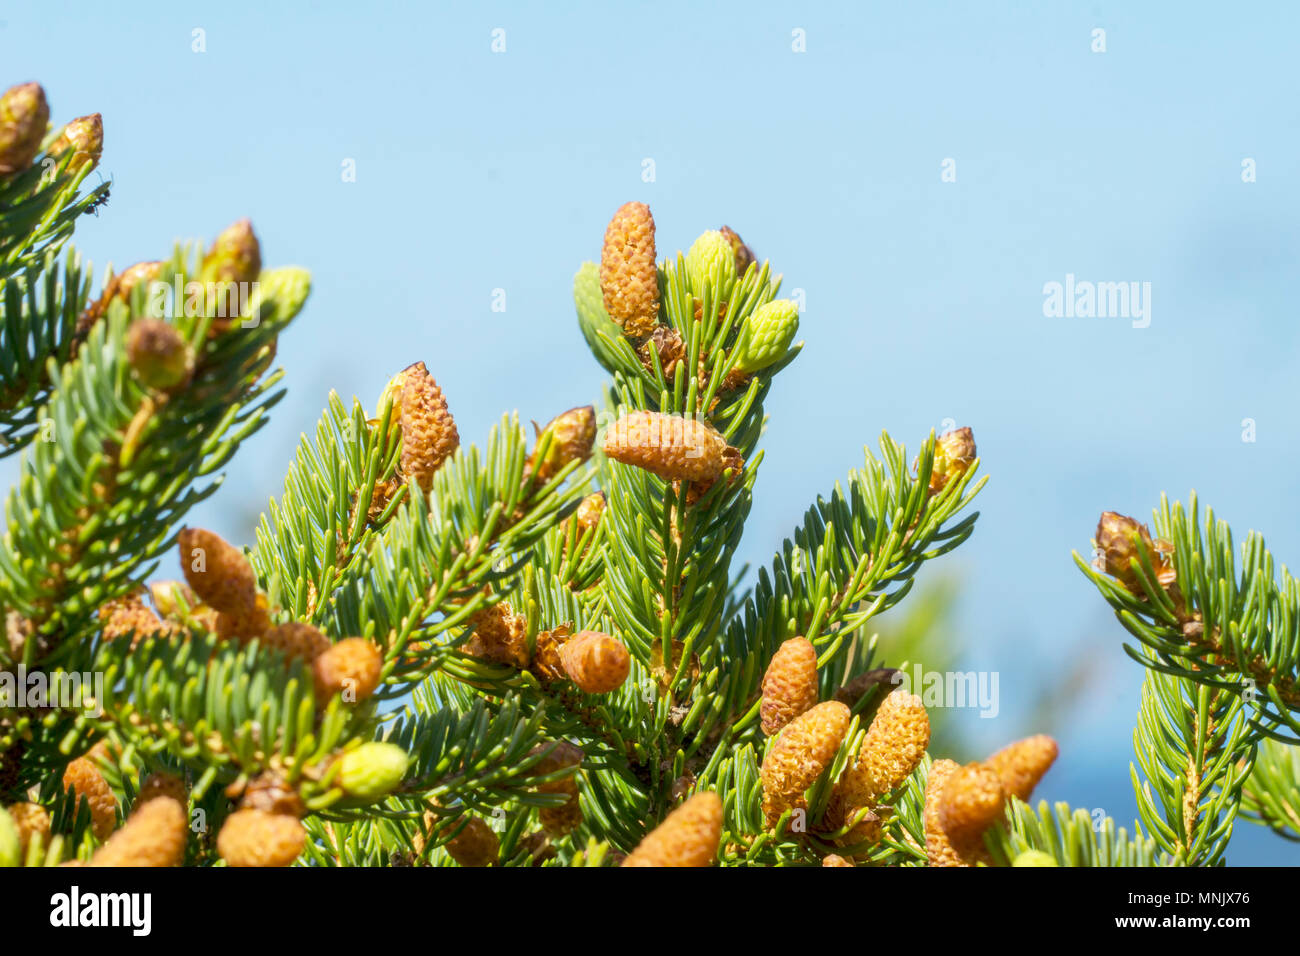 Fresh fir branches with pine cones in Denmark - Stock Image